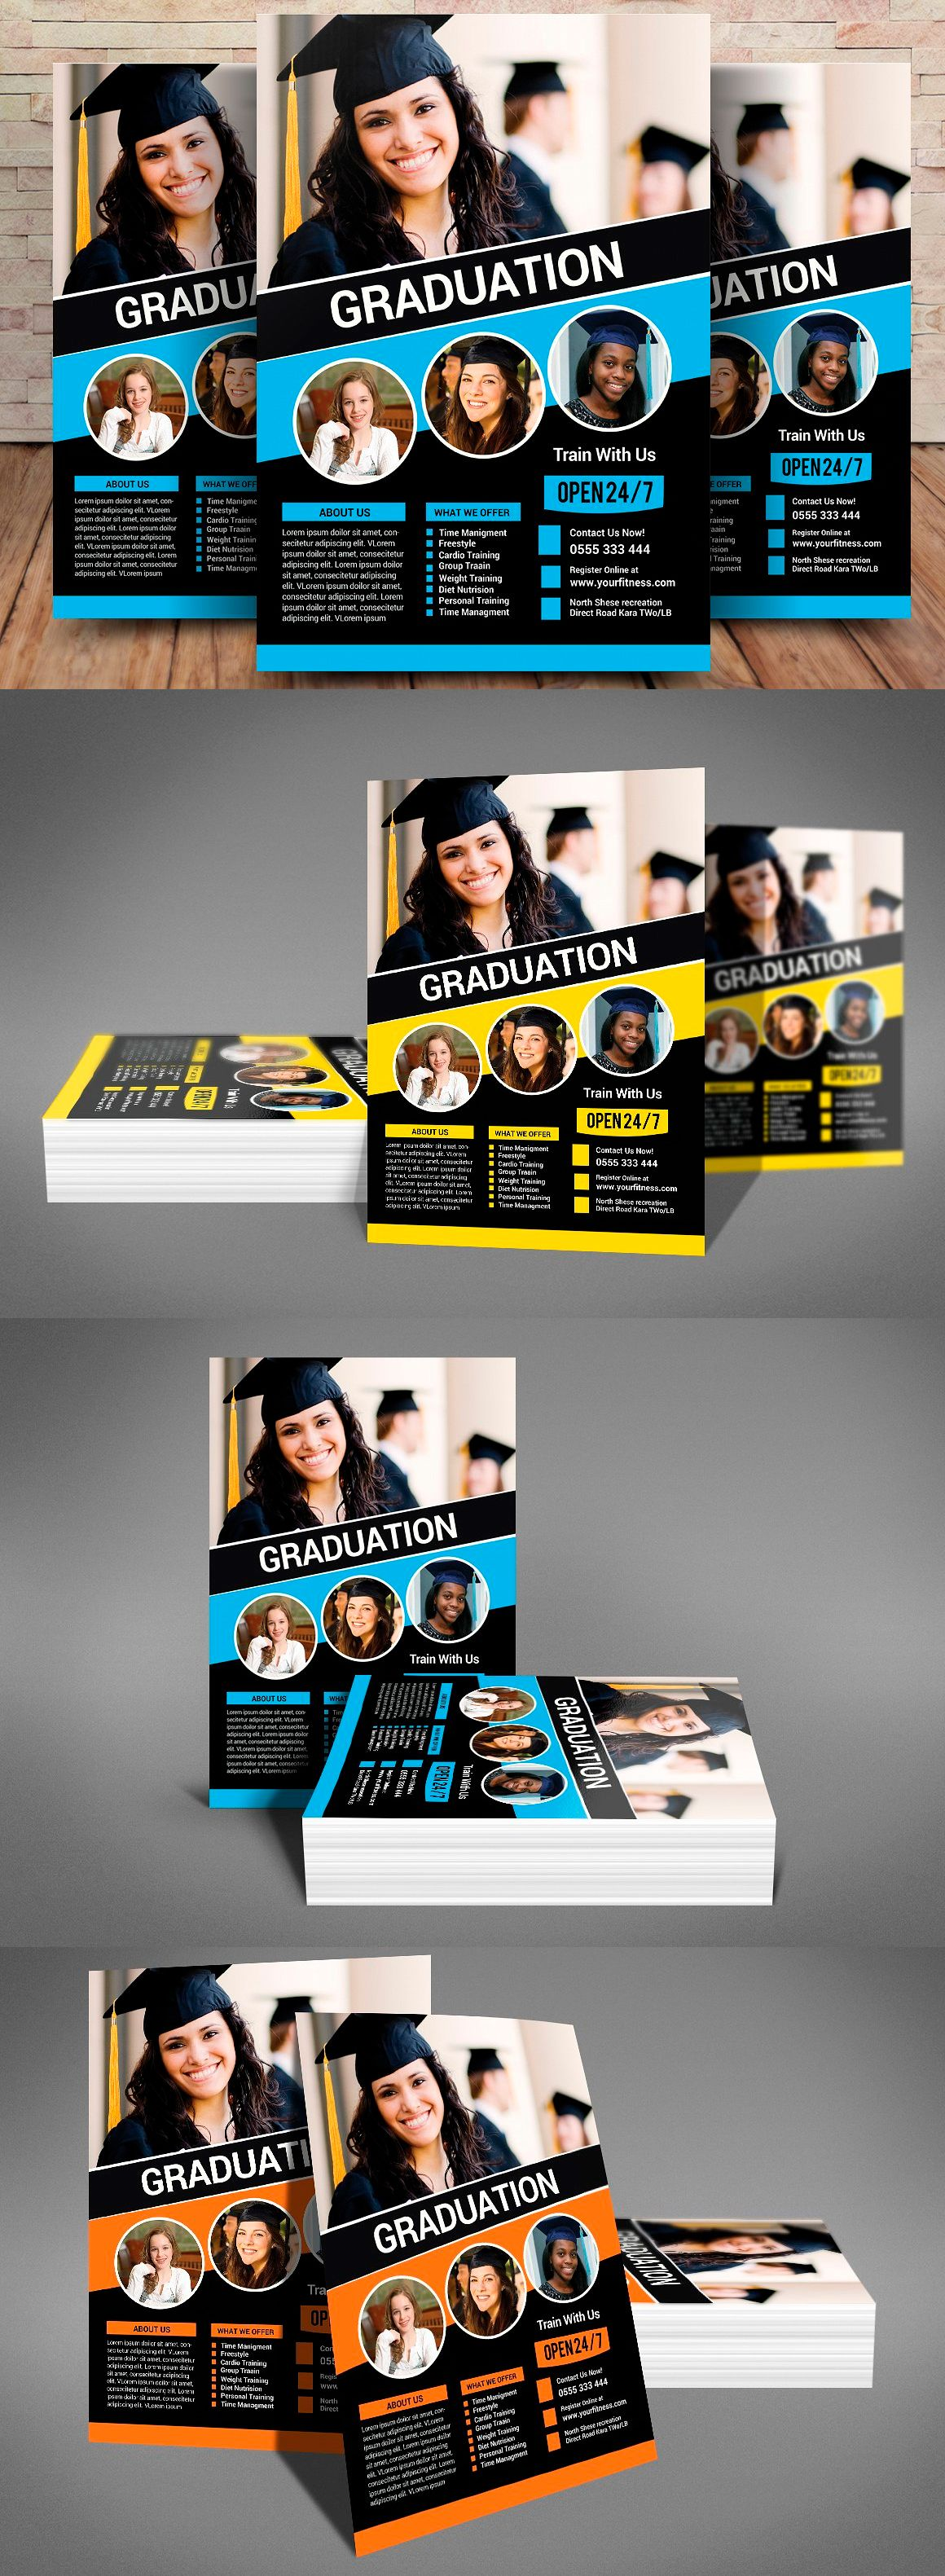 Magnificent Graduation Flyer Template Images - Entry Level Resume ...